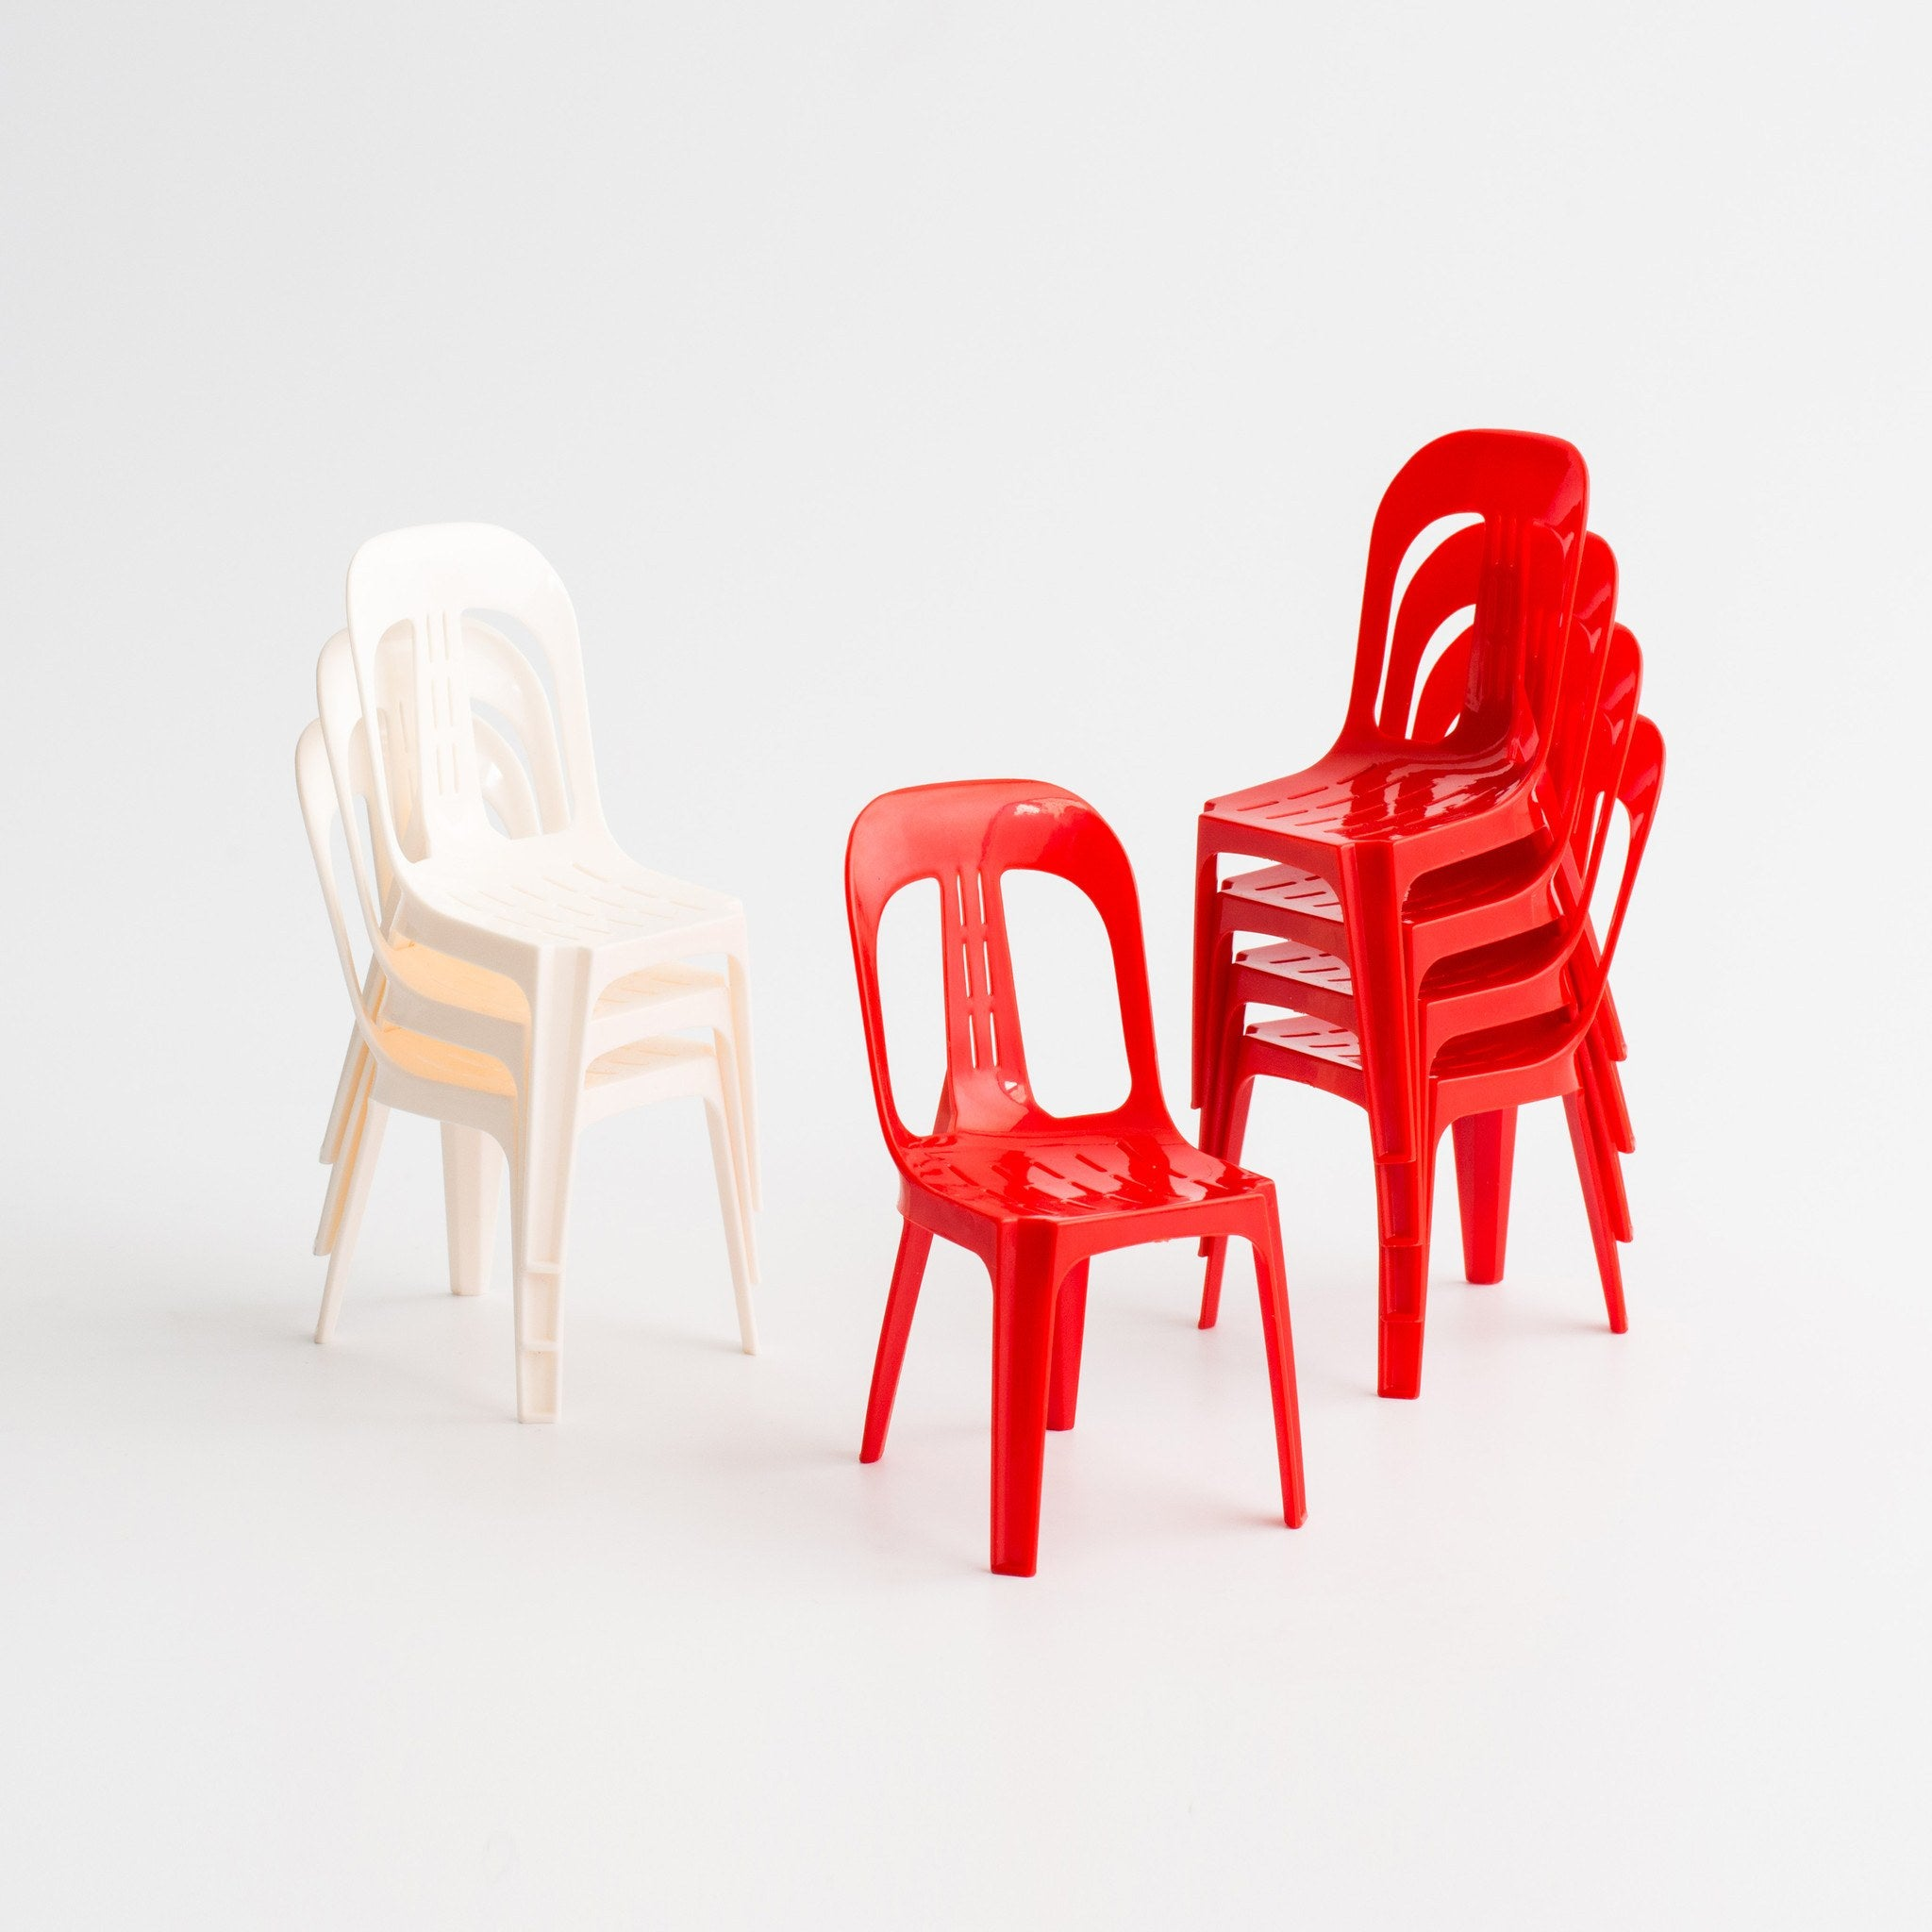 SS07 - Kopitiam Chair (Set of 3 Miniatures) - Collectibles - STUCKSHOP - Souvenirs from Singapore